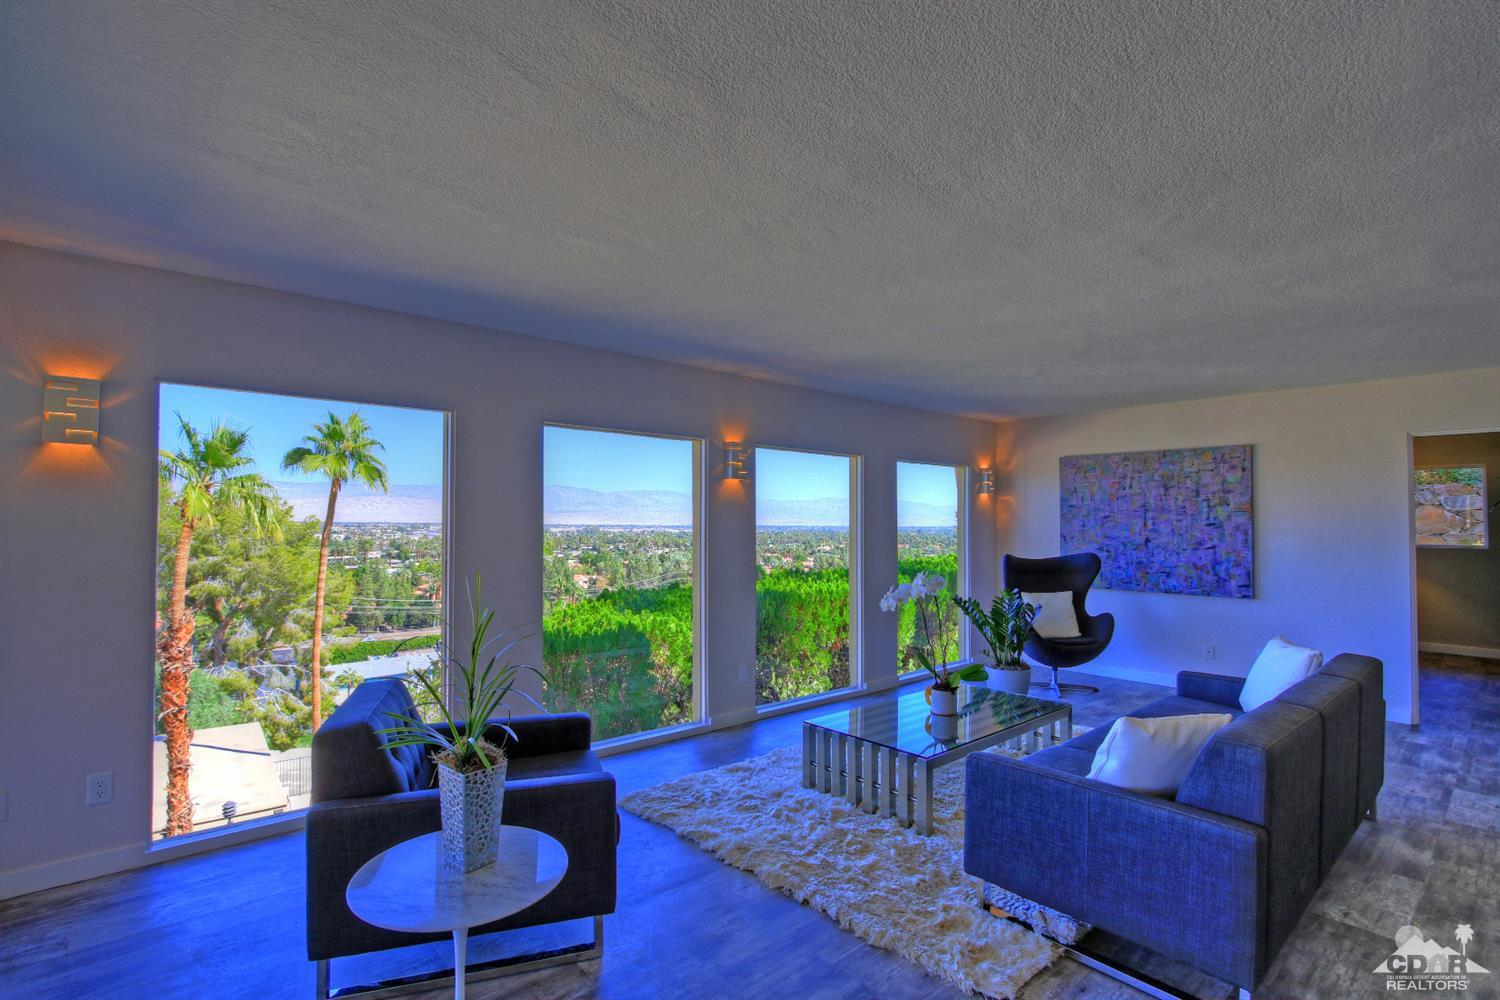 Mid century modern palm springs condos for sale for Palm springs mid century modern homes for sale